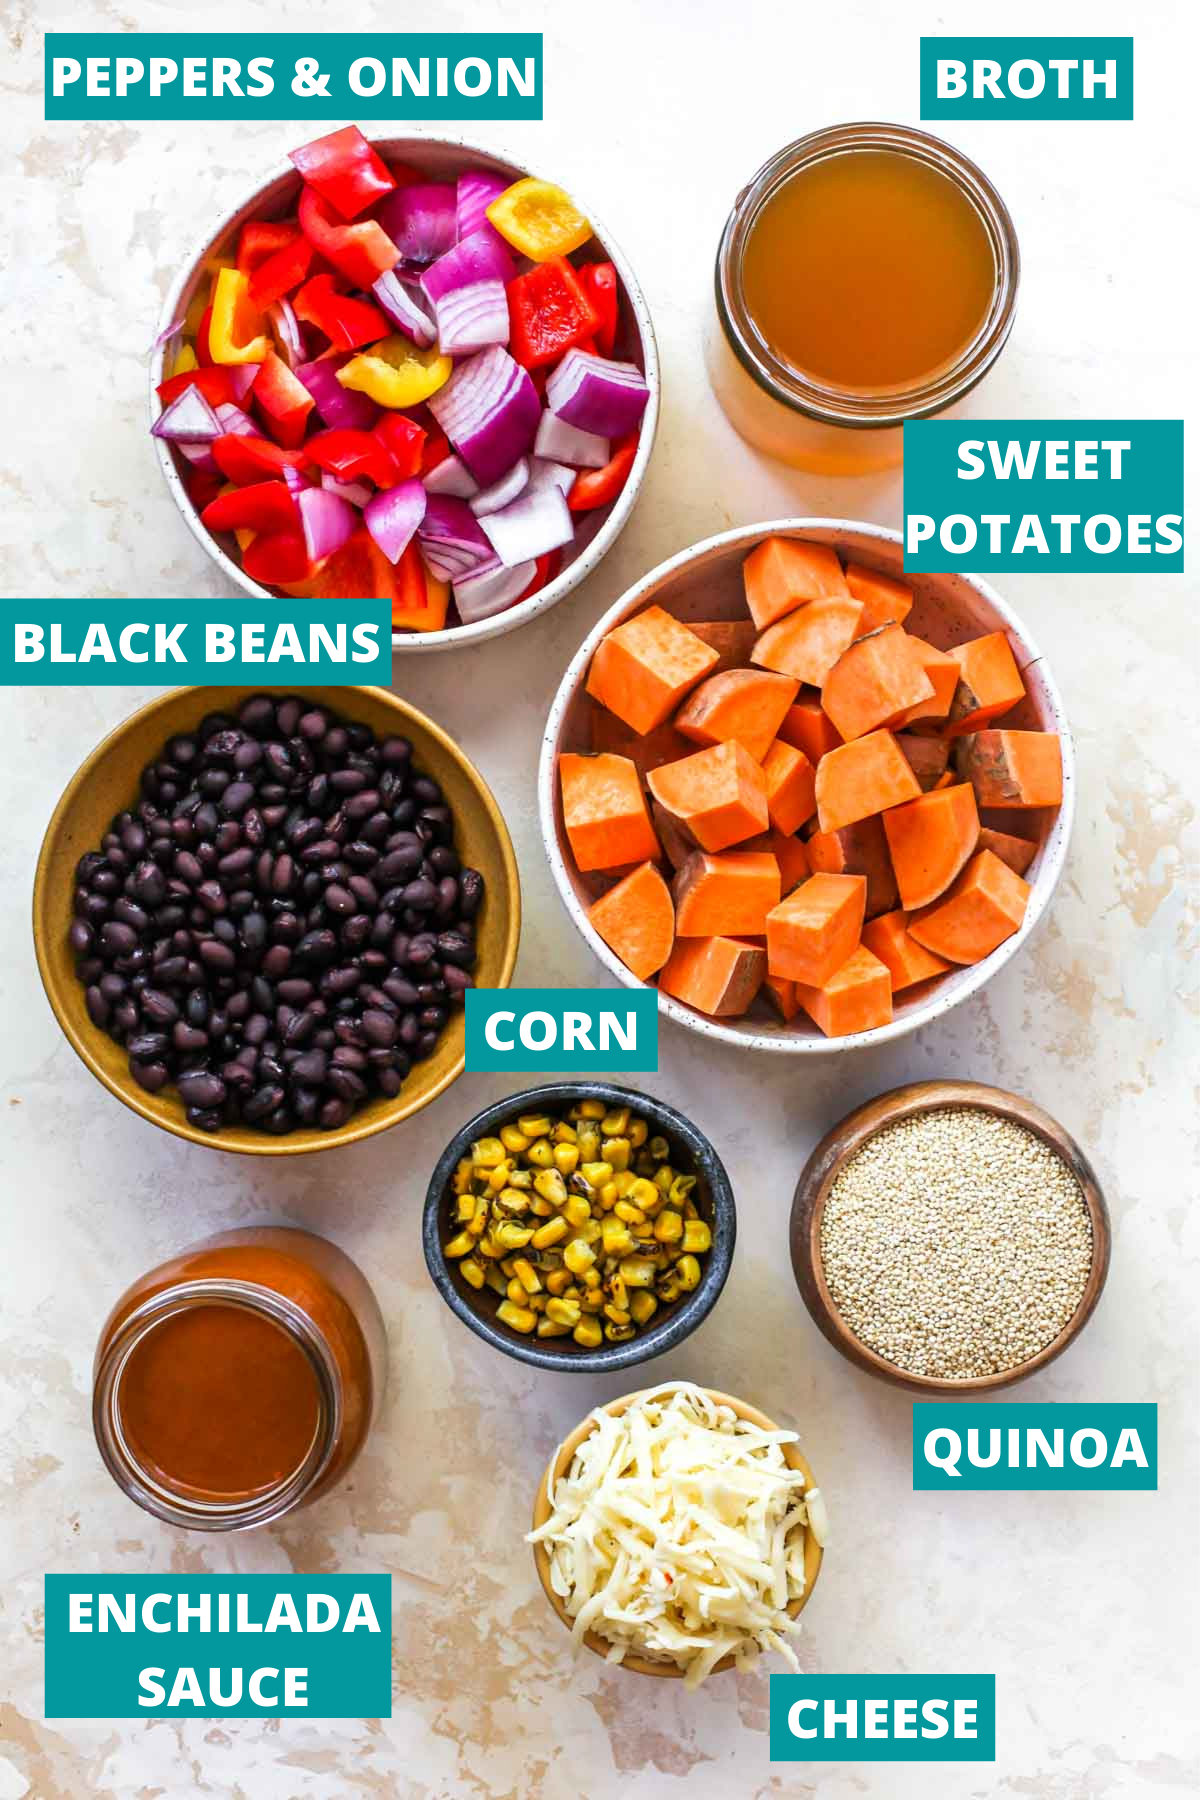 Sweet potatoes, peppers, beans, sauce, and quinoa in separate bowls with ingredient labels